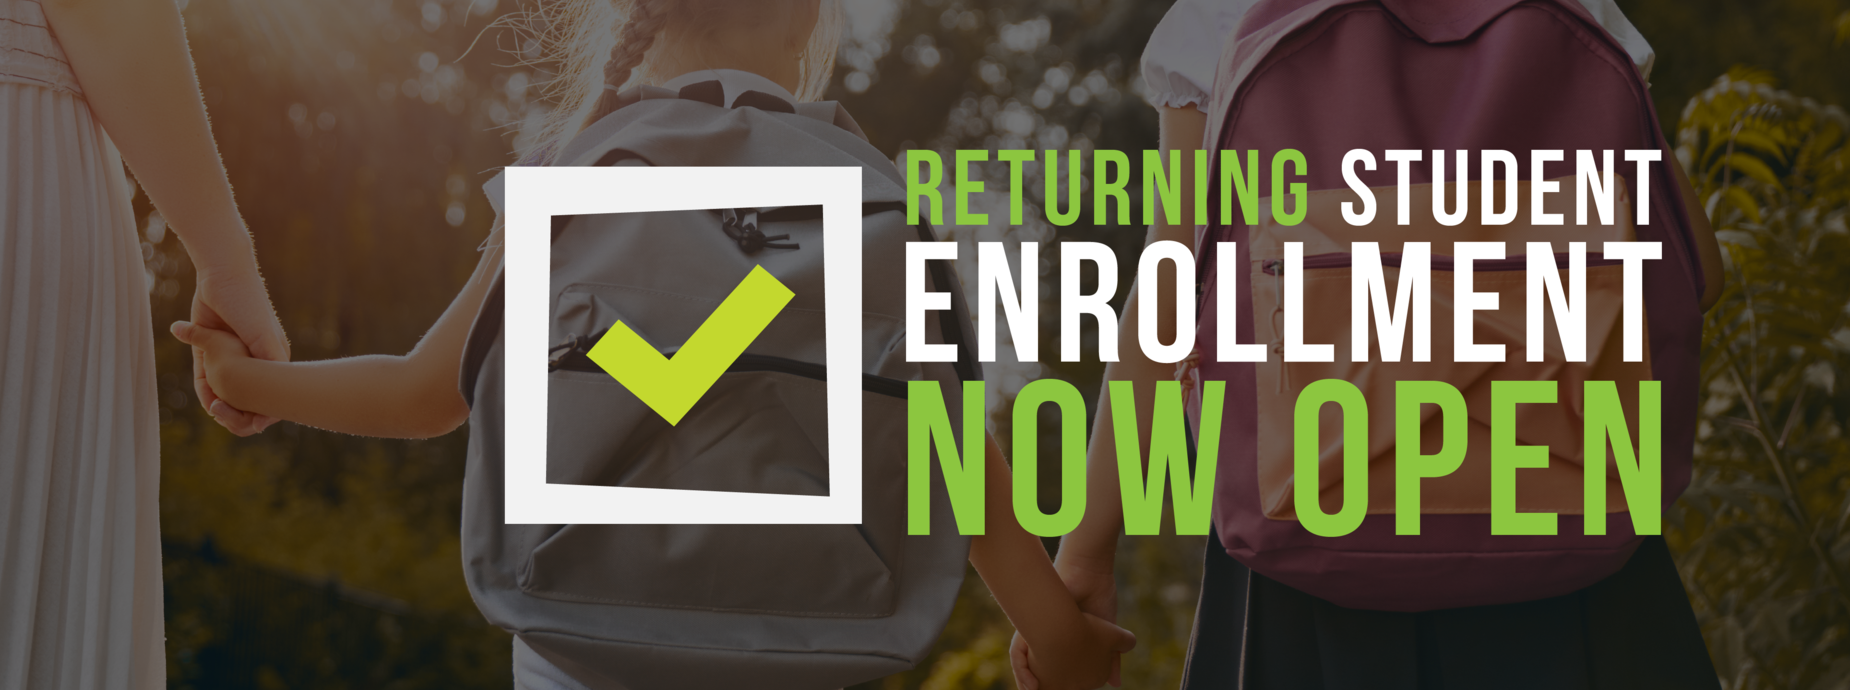 Returning Student Enrollment Now Open